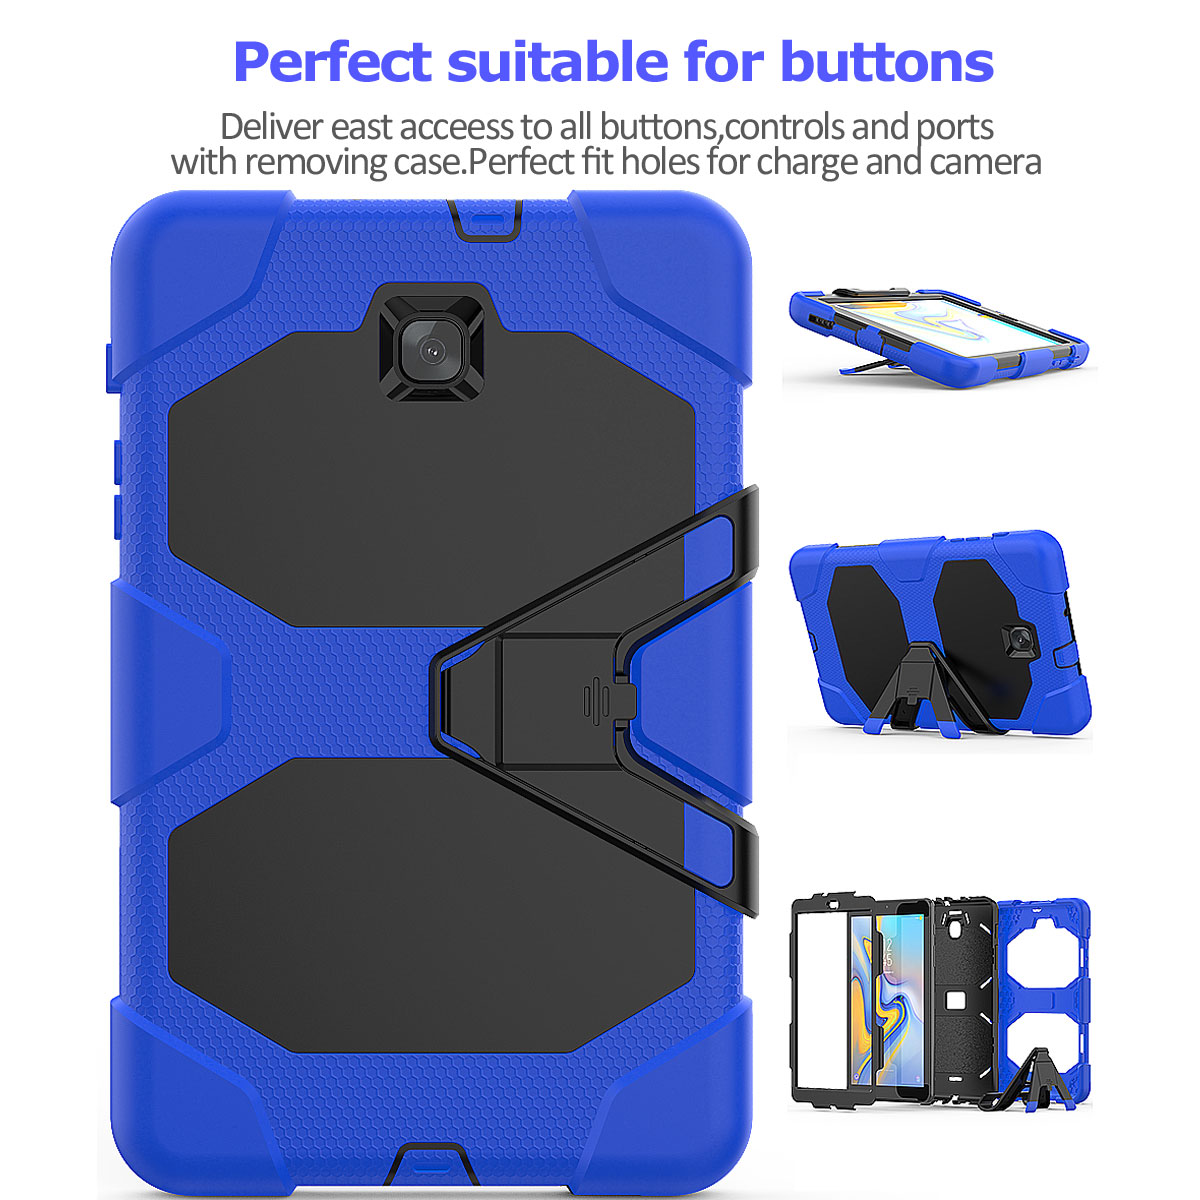 Rugged-Hard-Case-For-Samsung-Galaxy-Tab-A-8-0-2018-SM-T387-with-Screen-Protector thumbnail 81